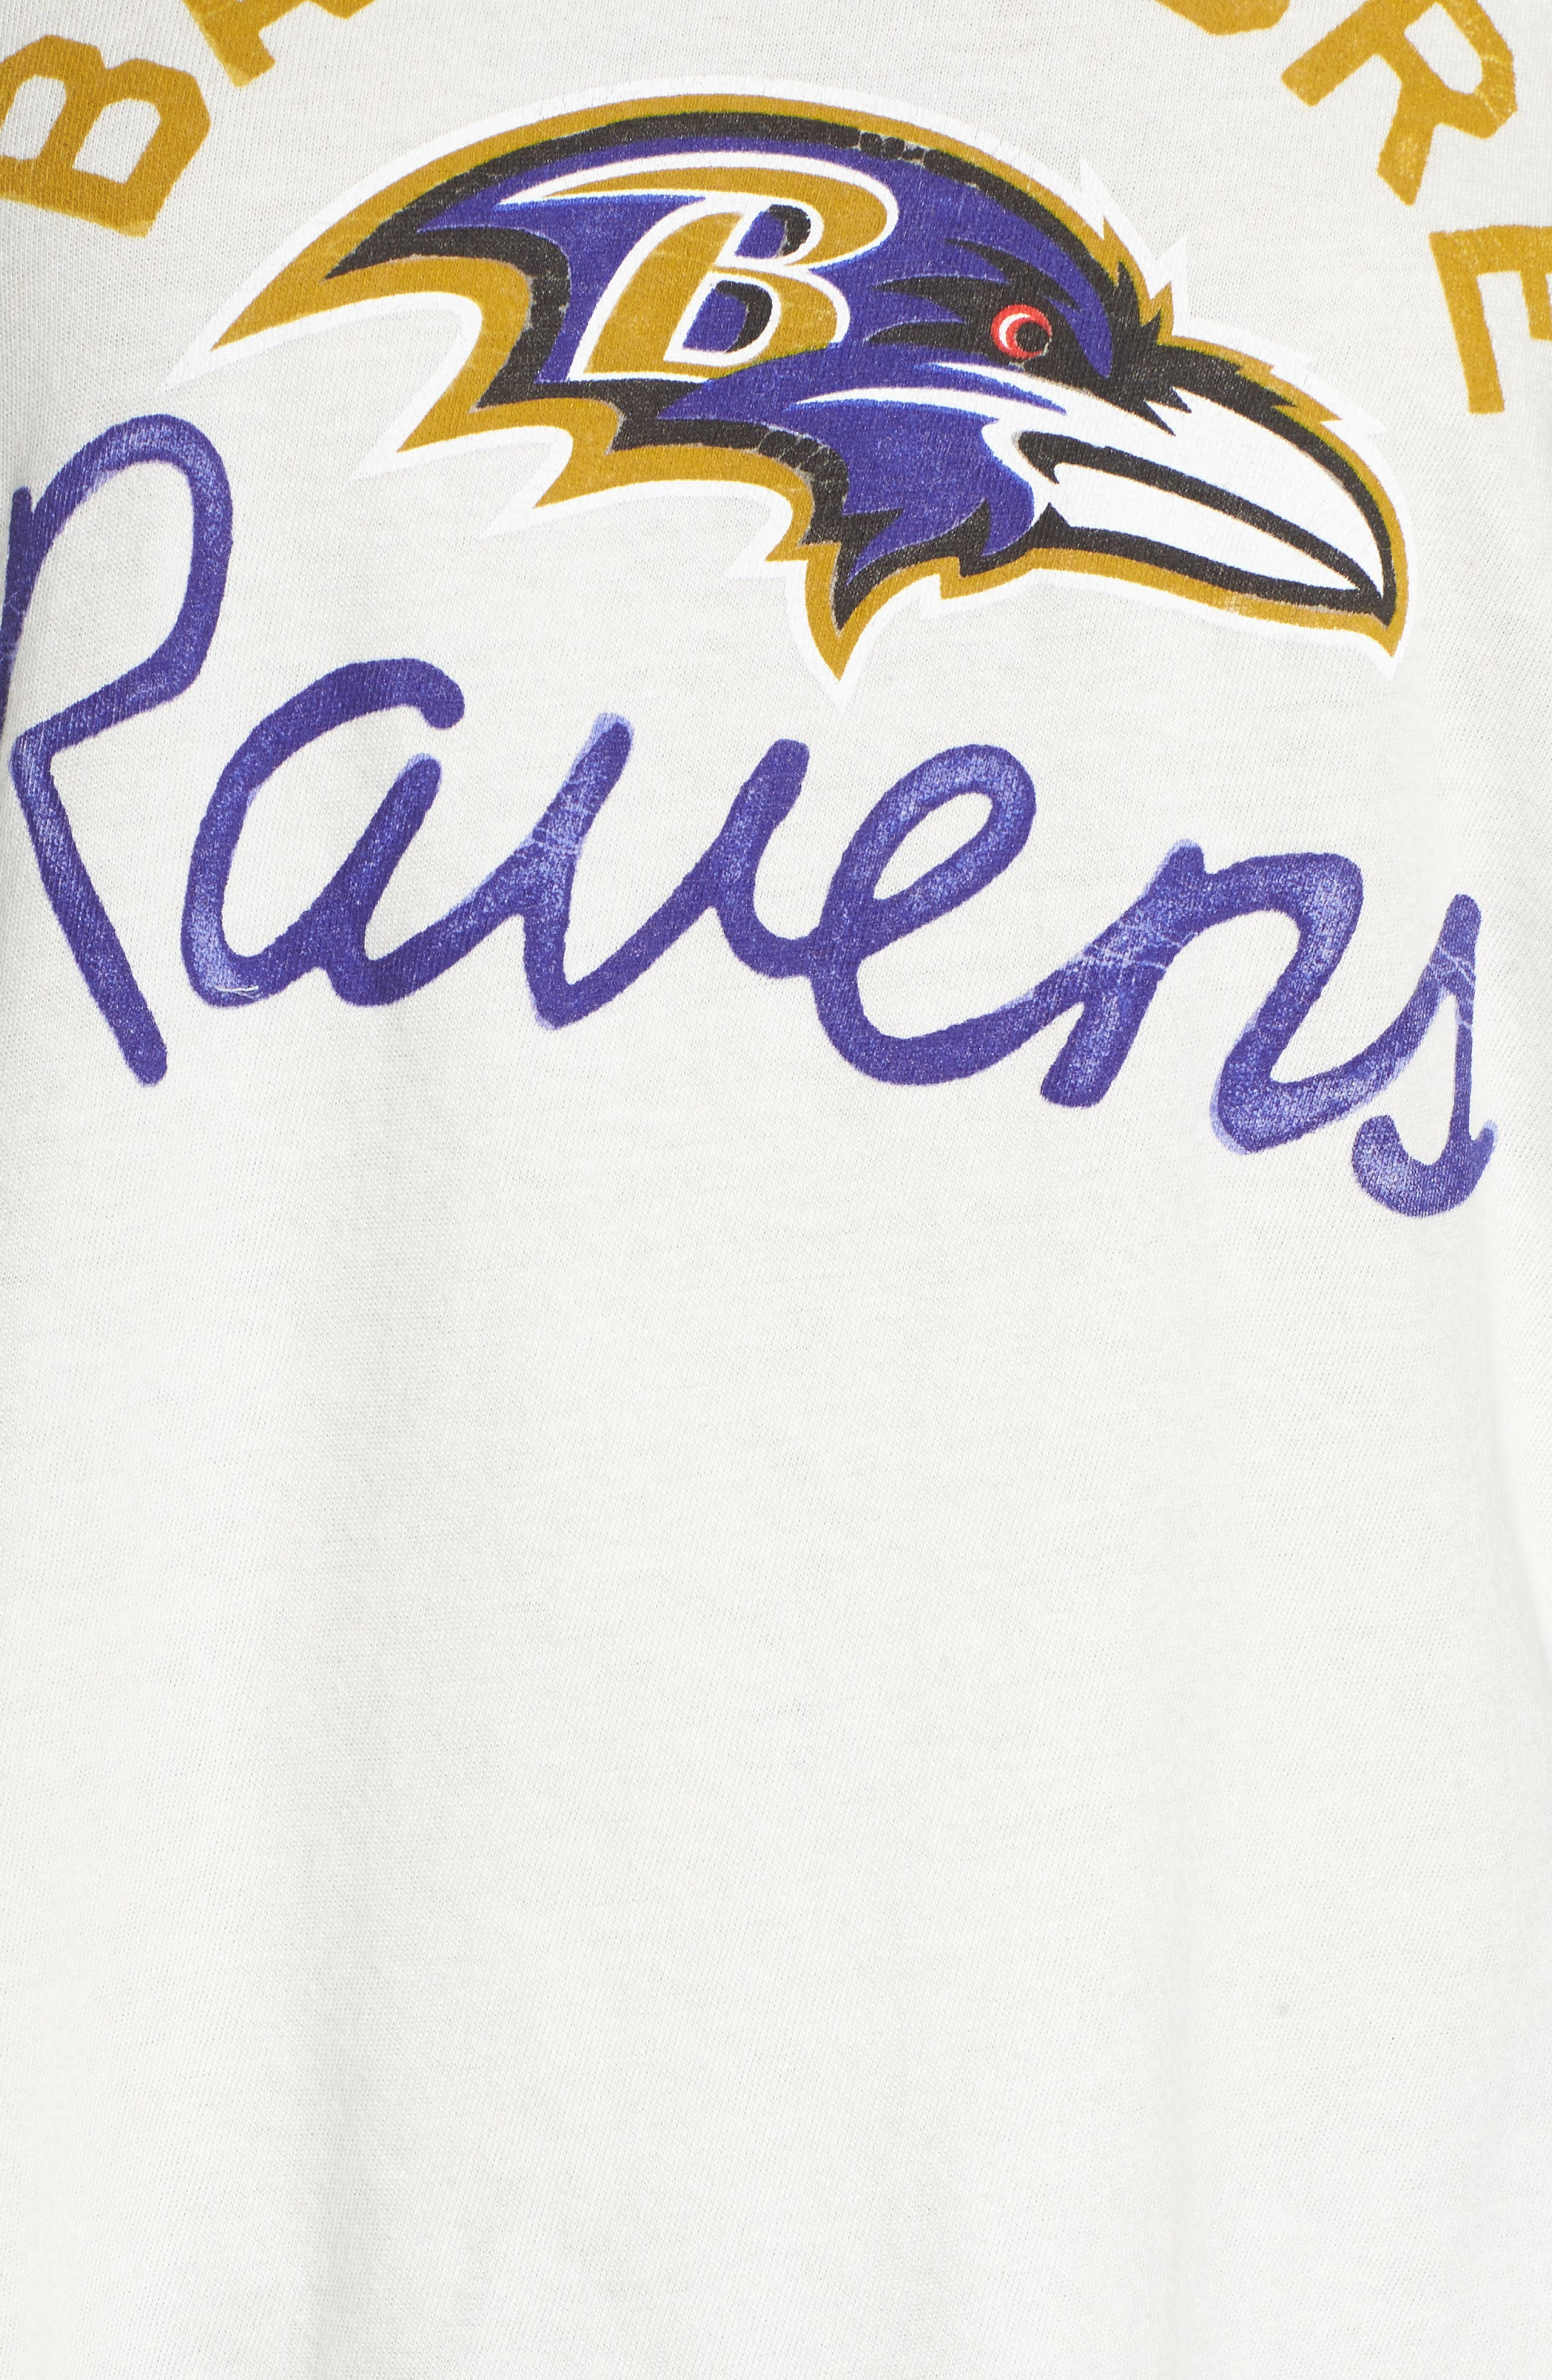 NFL Baltimore Ravens Raglan Tee,                             Alternate thumbnail 5, color,                             189